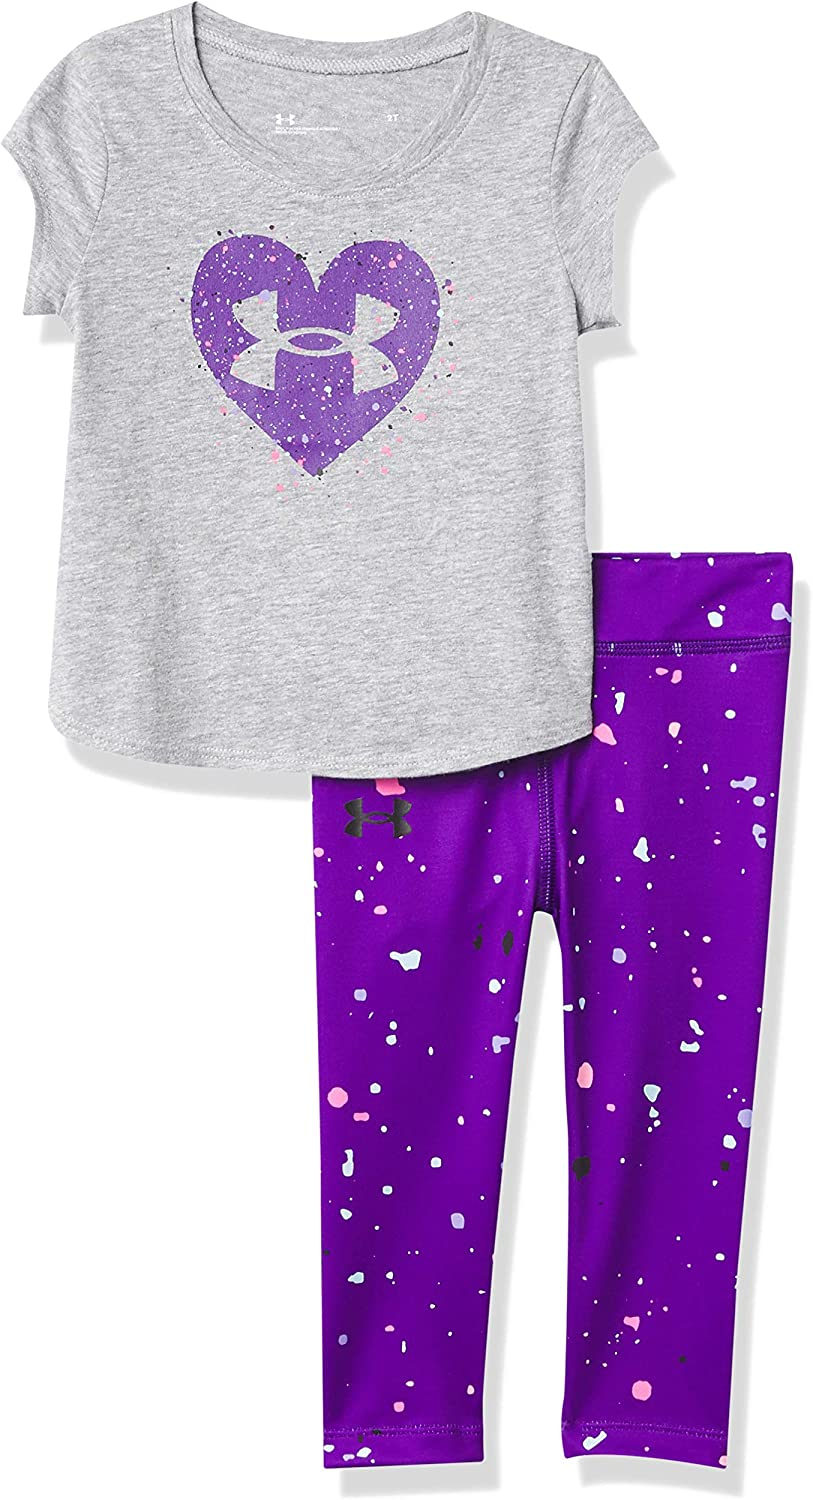 Under Sales of SALE items from new works Armour Baby Girls' Short Tee Set Capri SALENEW very popular Sleeve and